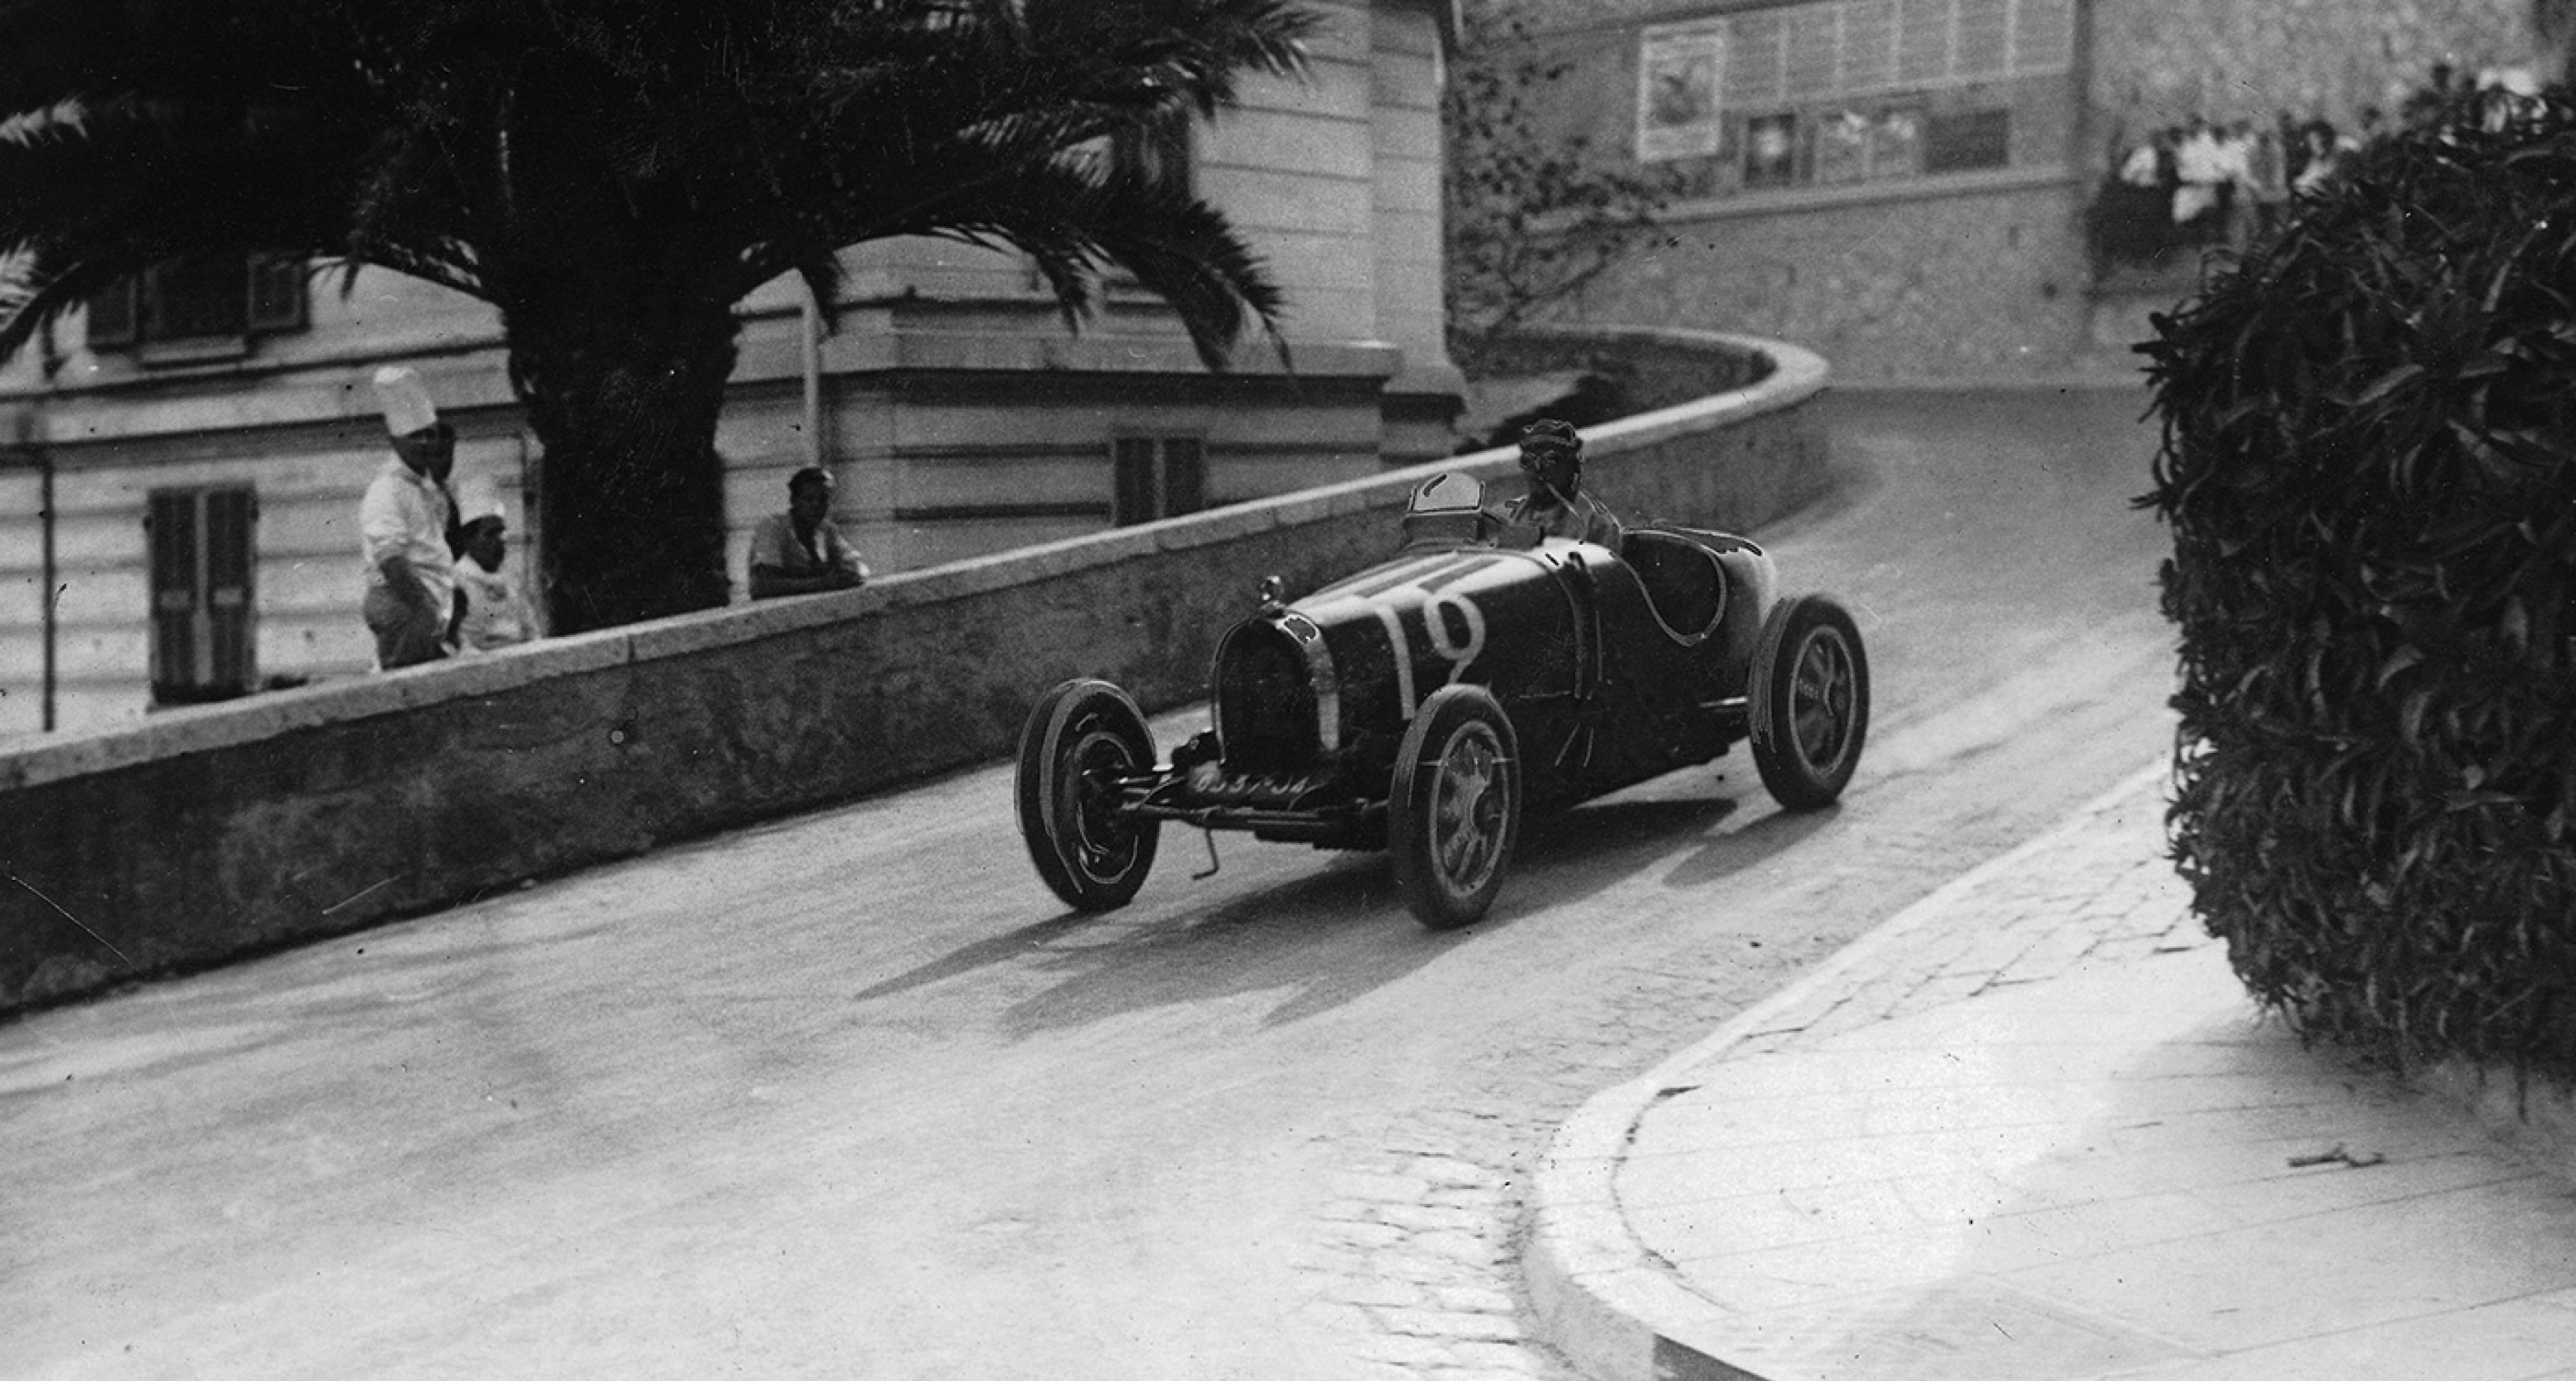 The Bugatti of William Grover-Williams at the 1929 Monaco GP